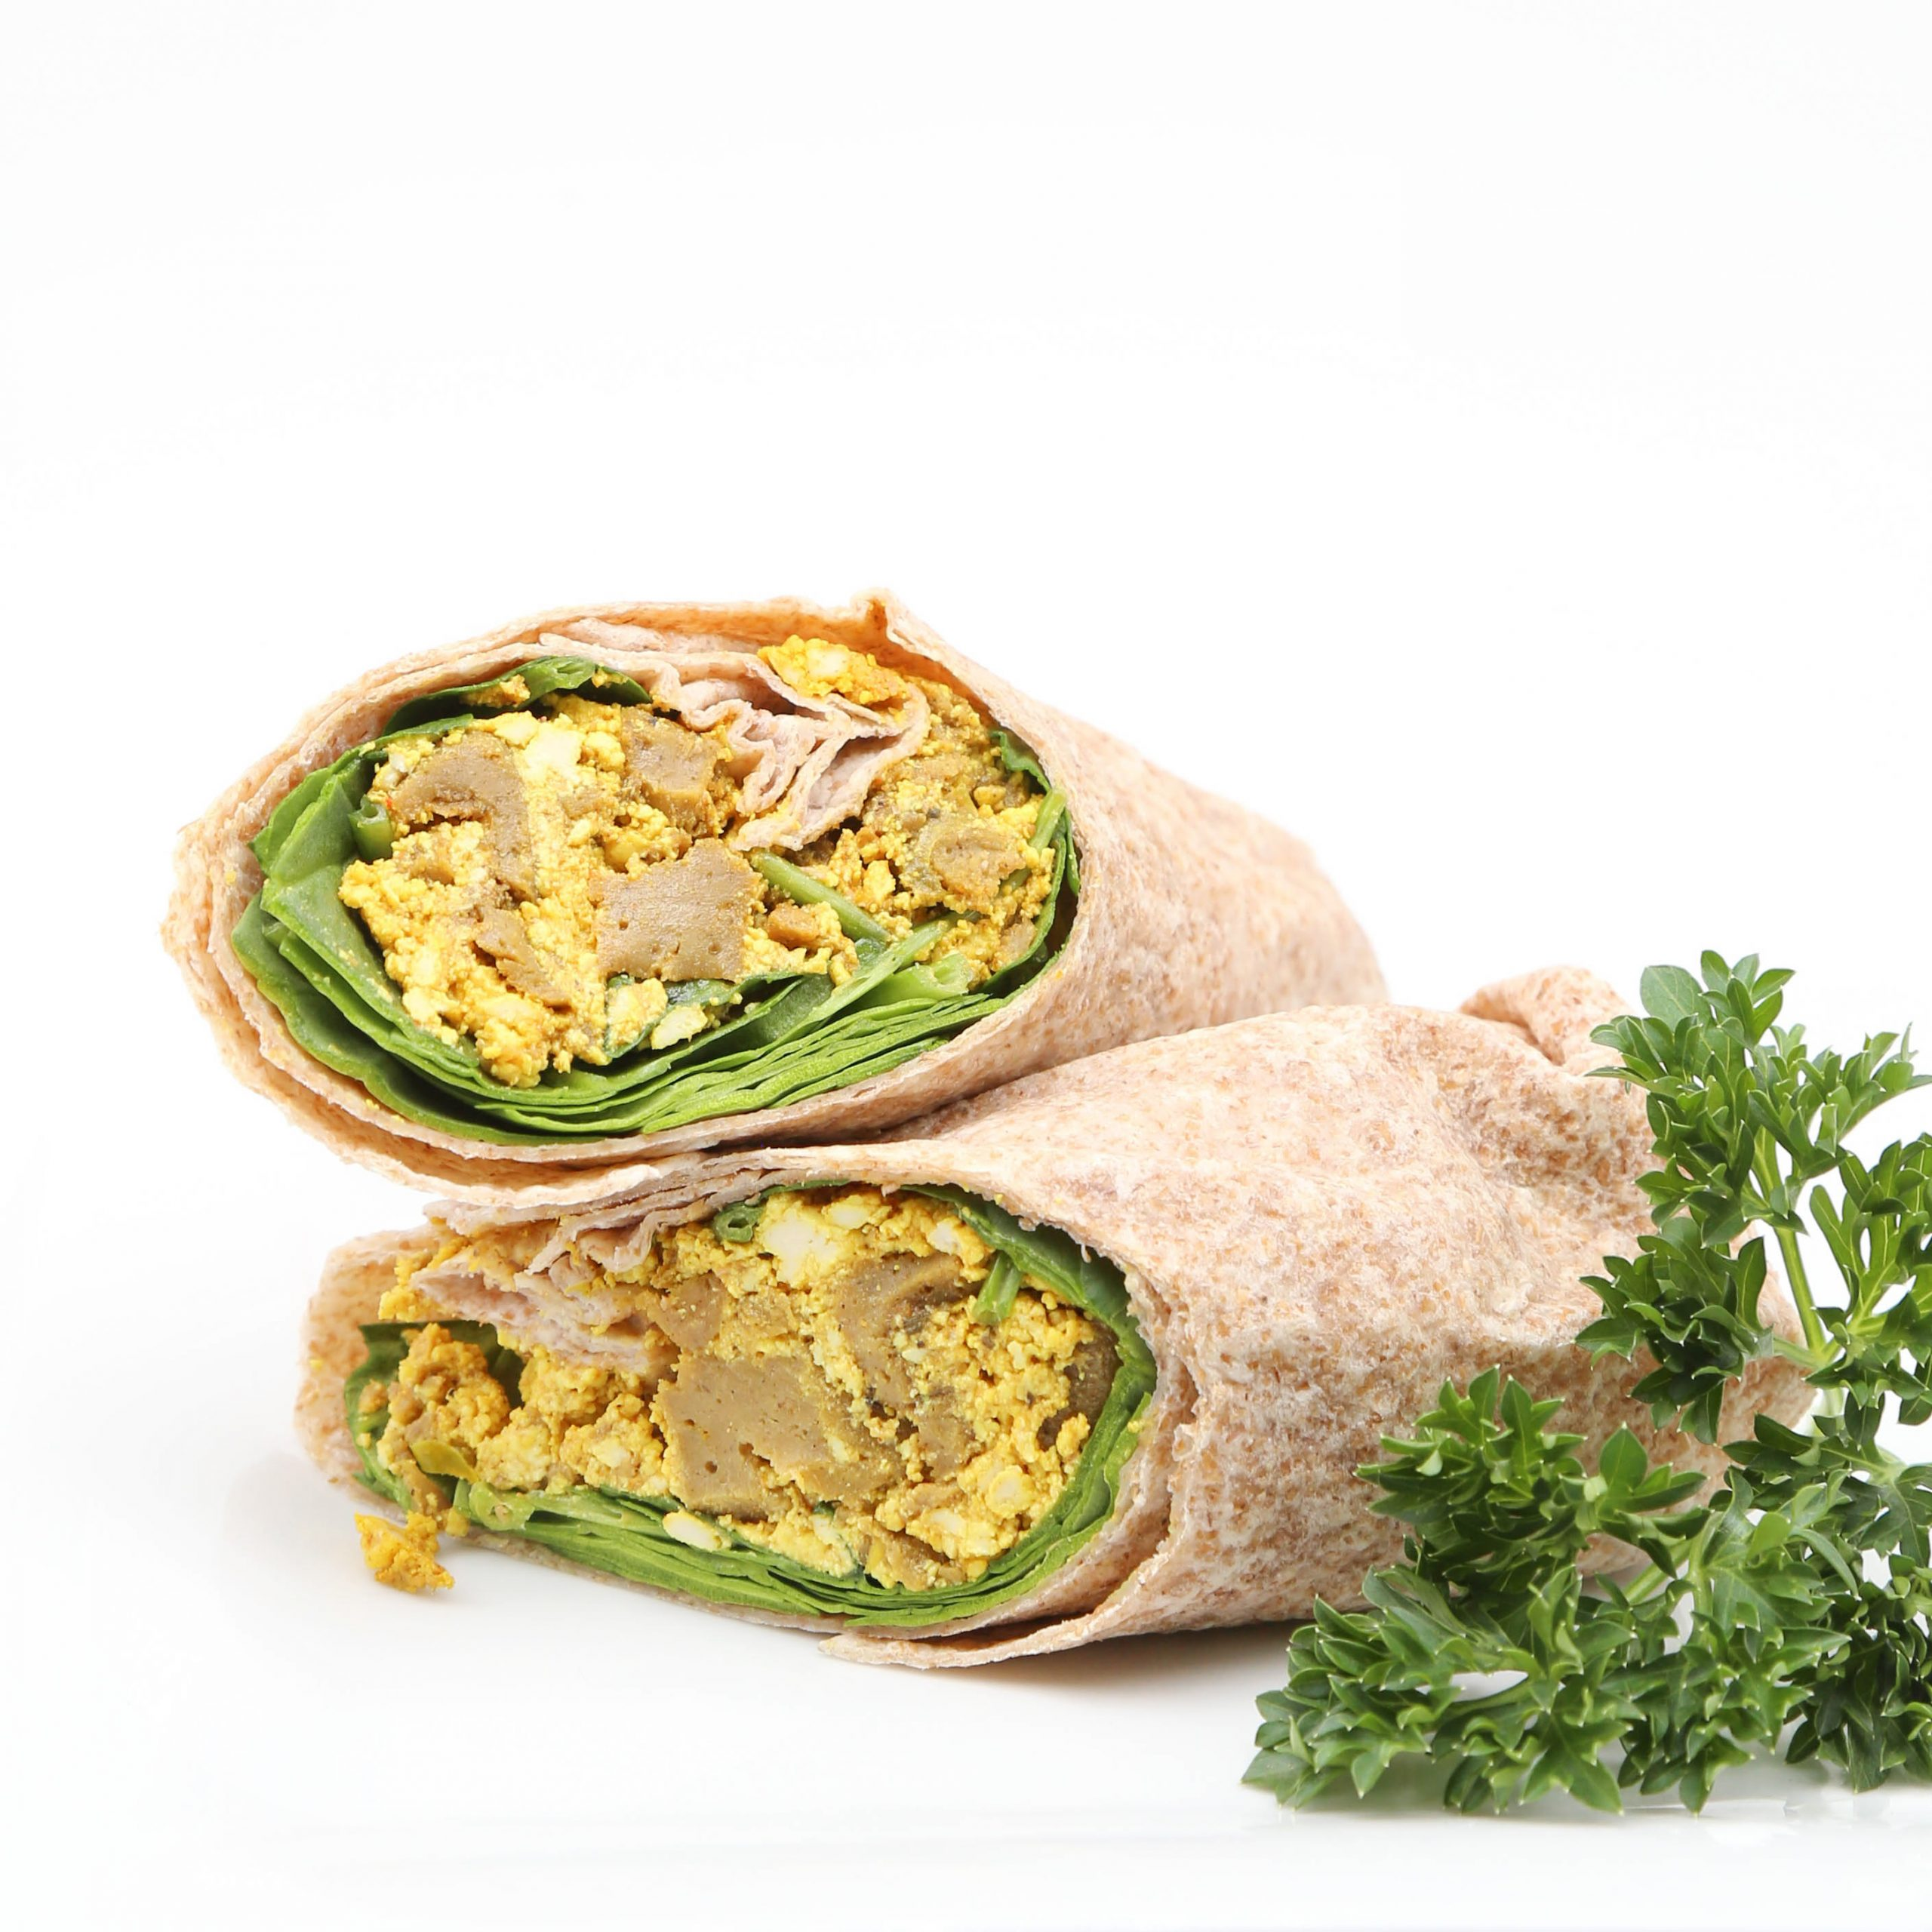 Underground Vegan Steak Tofu Breakfast Burrito